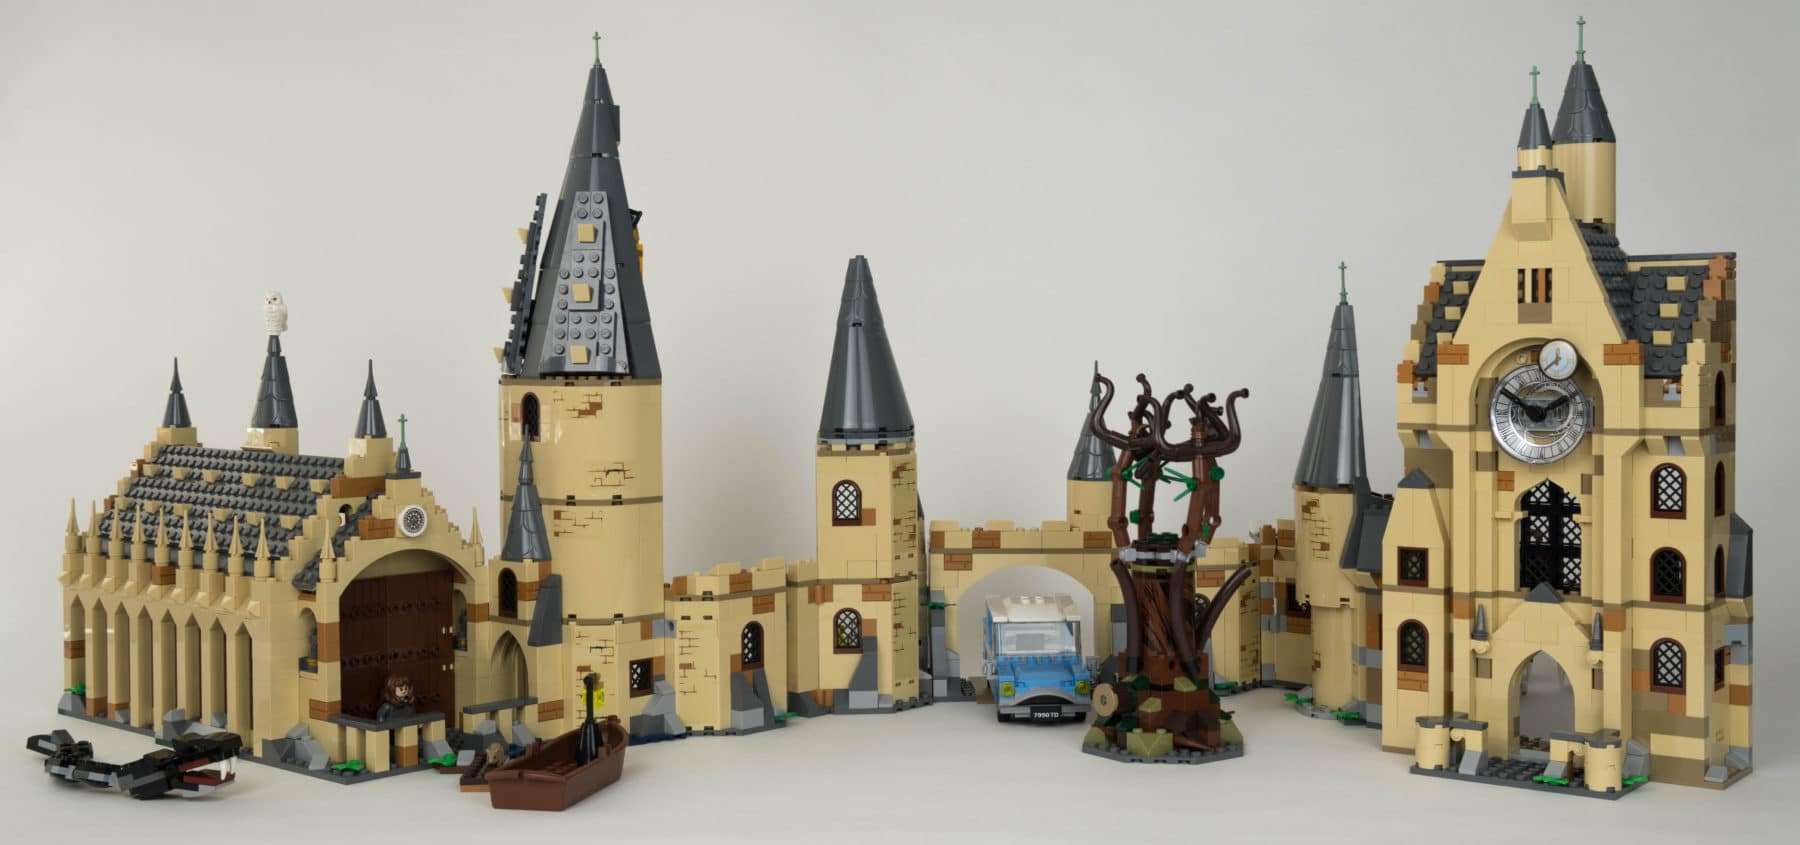 LEGO Harry Potter 75948, 75953 und 75954